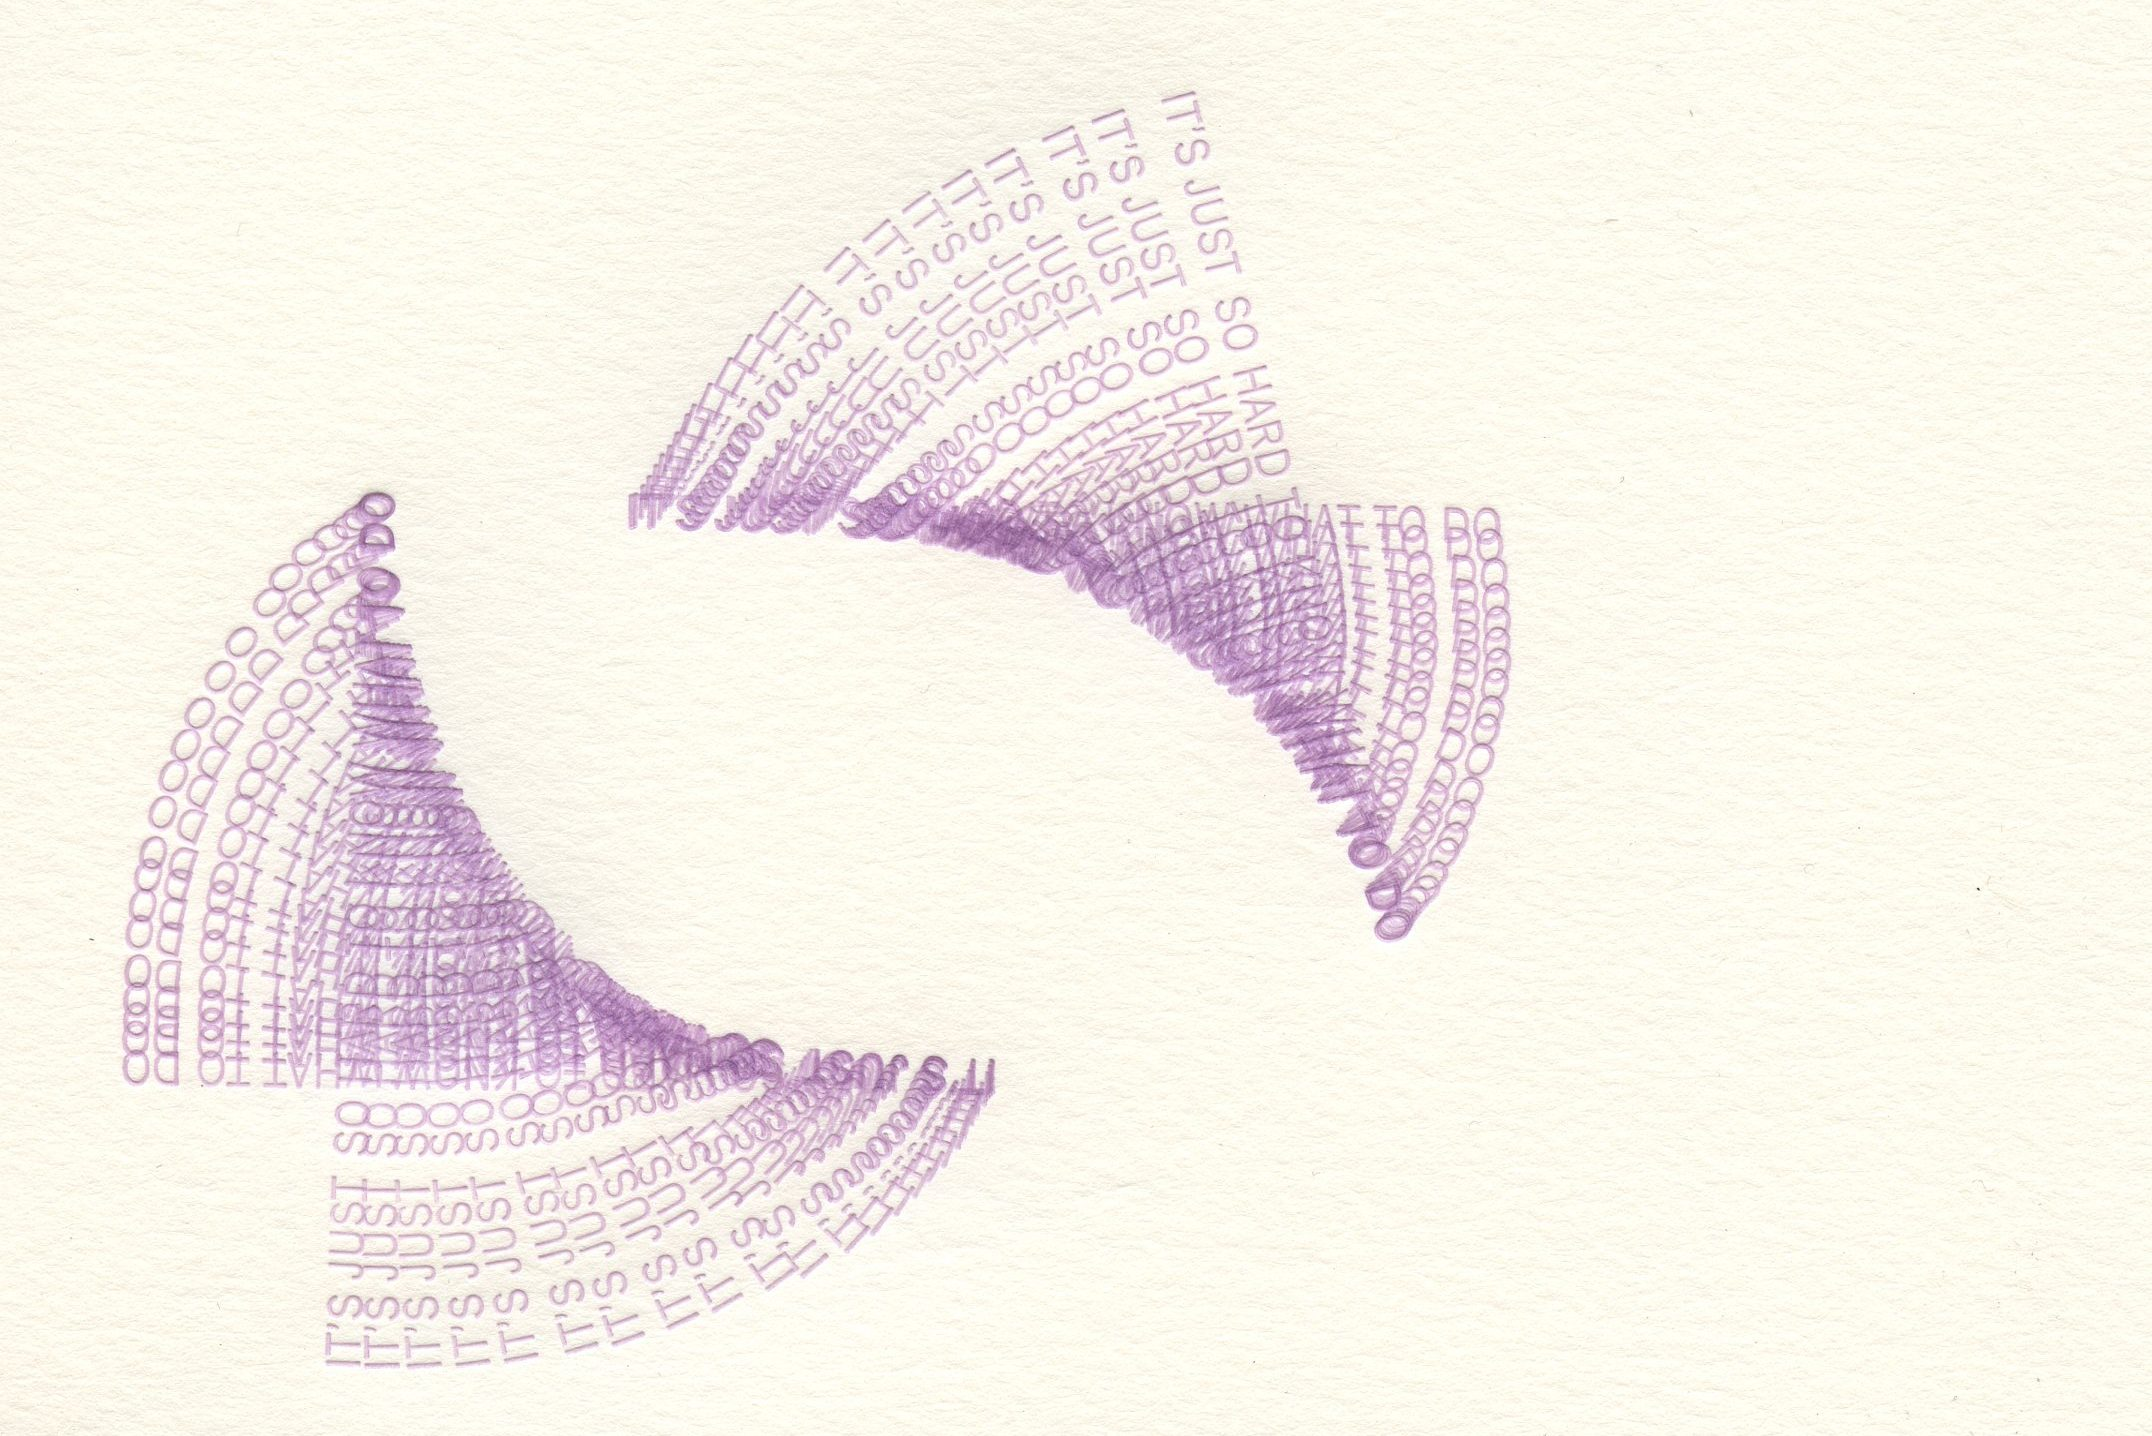 """Lilac text on white paper in two swooping formations. Text is all caps, sans serif and reads """"it's just so hard to know what to do"""" with text printed over itself to create image."""